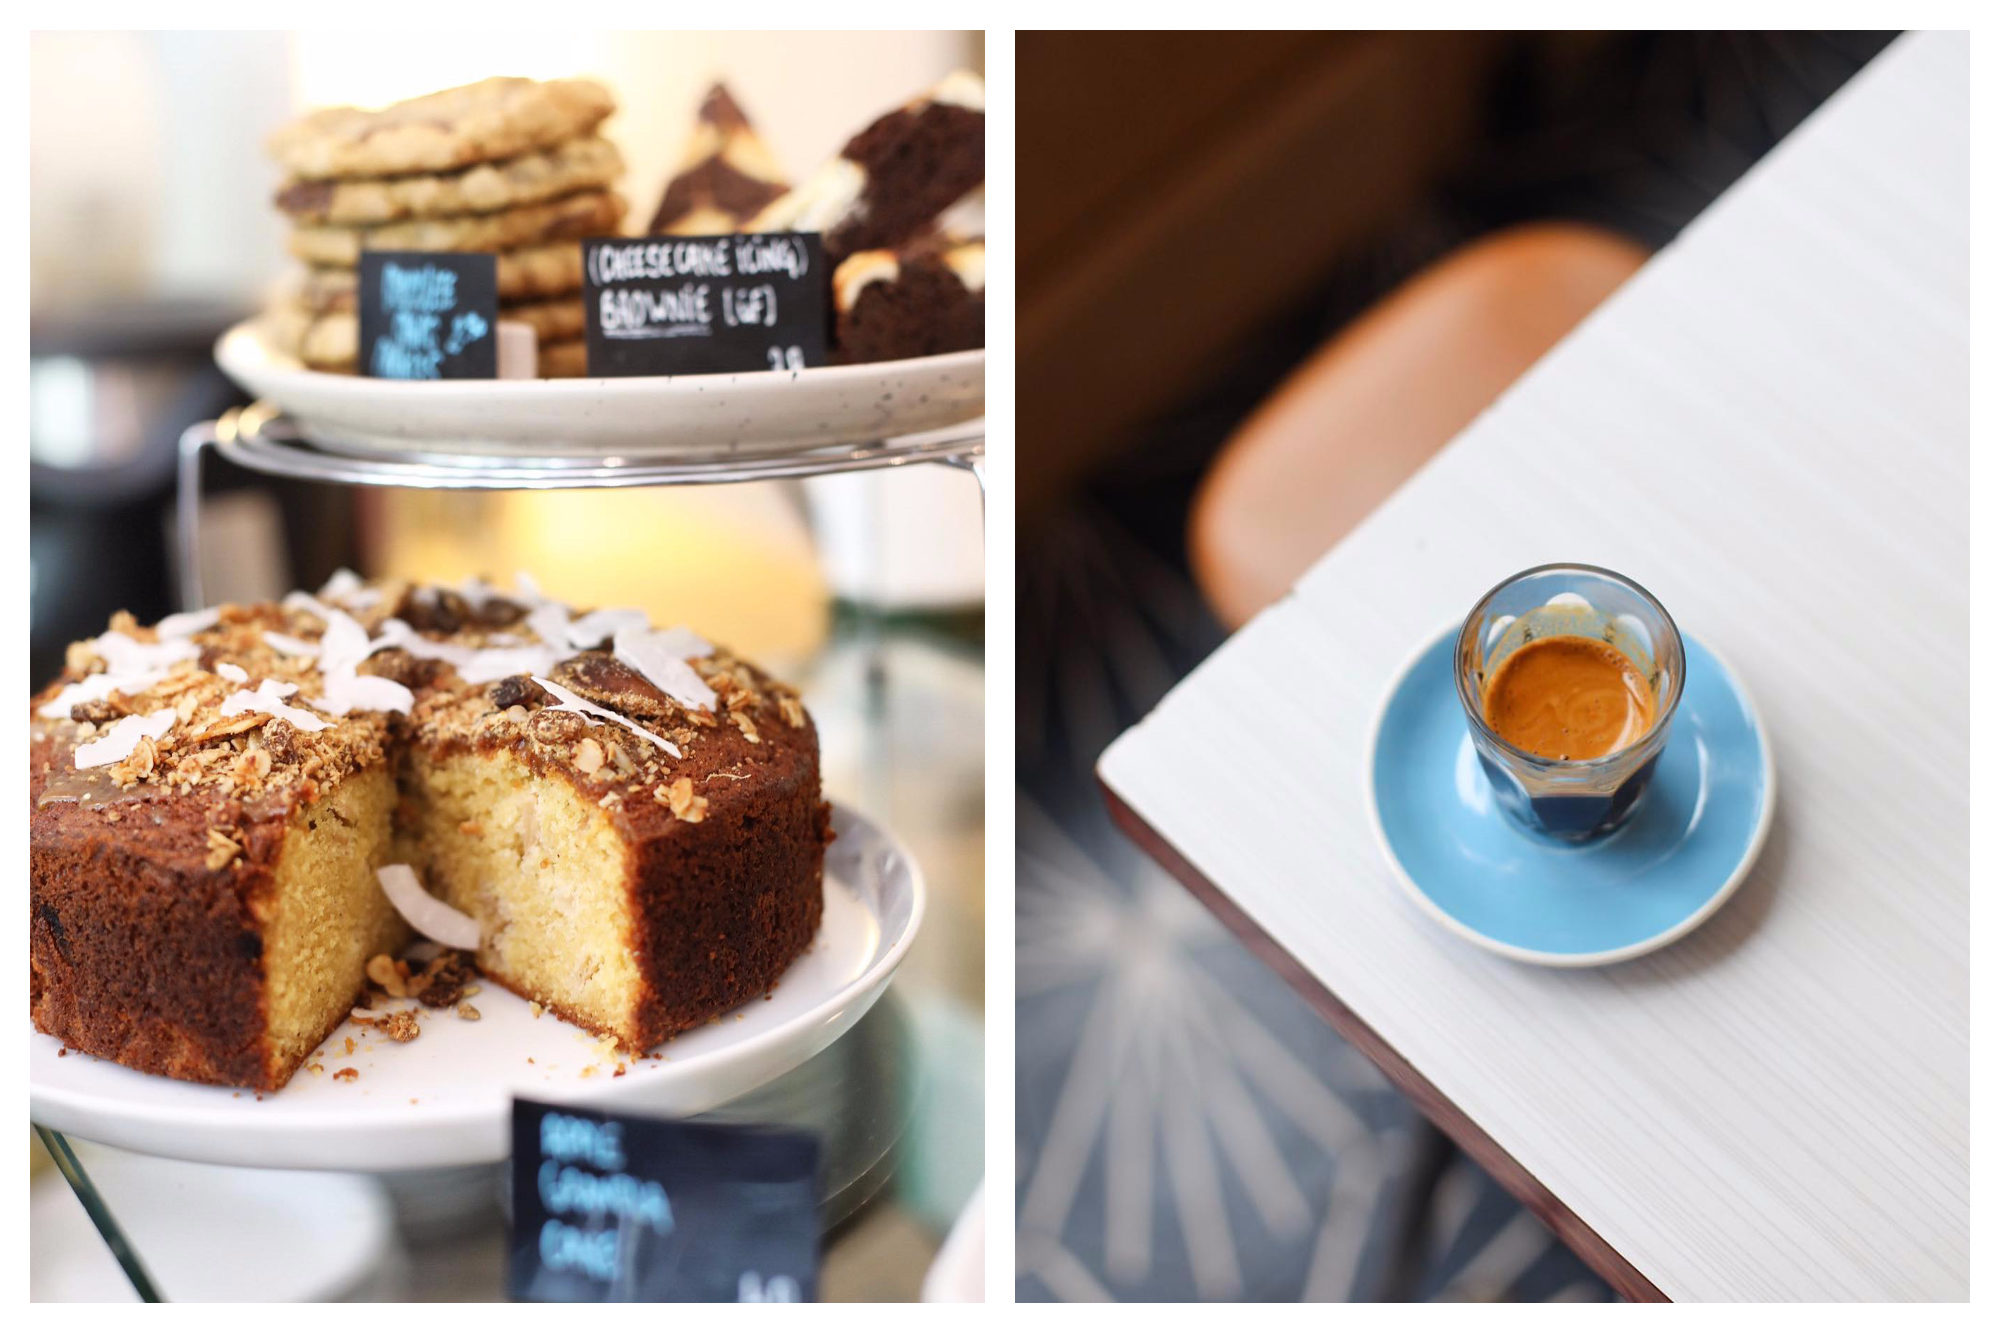 A spongy cake and cookies (left) and espresso coffee on a blue saucer set on a table (right) at Neighbours coffee shop in Paris.